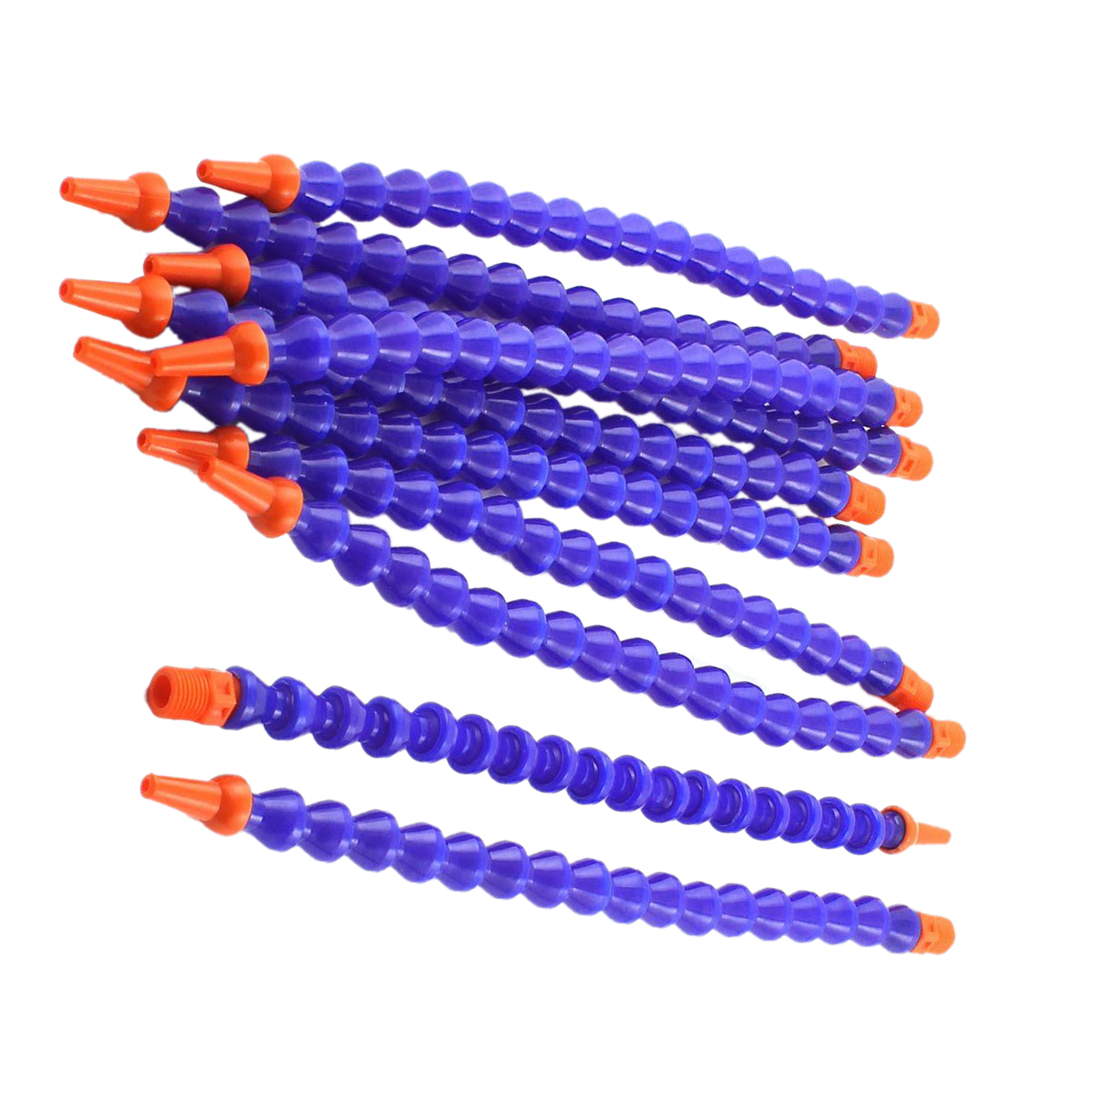 WSFS Hot 10PCS Round Nozzle 1/4PT Flexible Oil Coolant Pipe Hose Blue Orange 1 pc 1 2 400mm flexible adjustable water oil coolant pipe hose w round nozzle switch